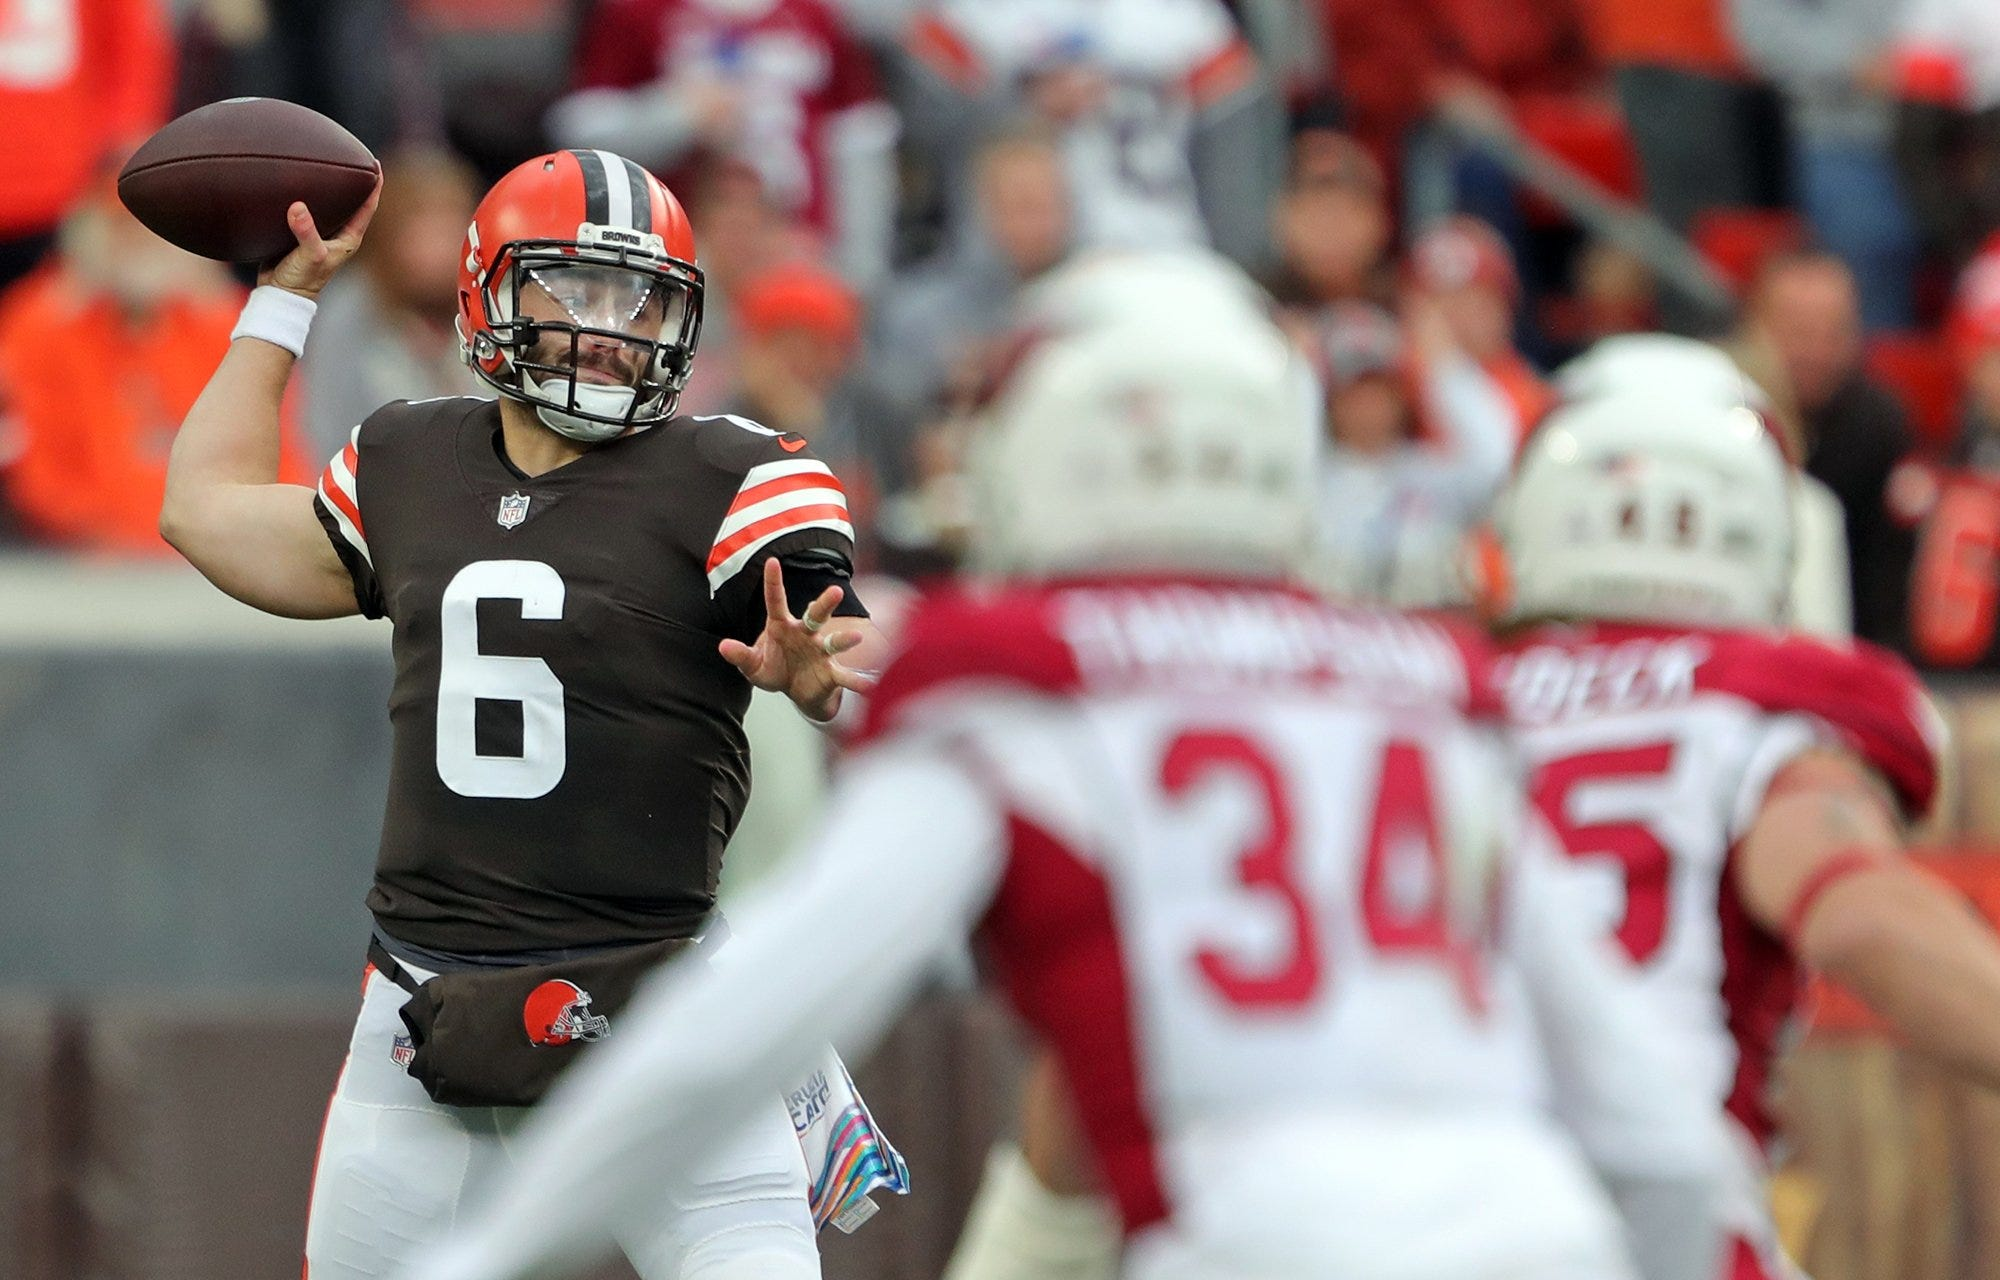 Cleveland Browns quarterback Baker Mayfield (6) looks to make a pass during the first half of an NFL football game against the Arizona Cardinals at FirstEnergy Stadium, Sunday, Oct. 17, 2021, in Cleveland, Ohio.